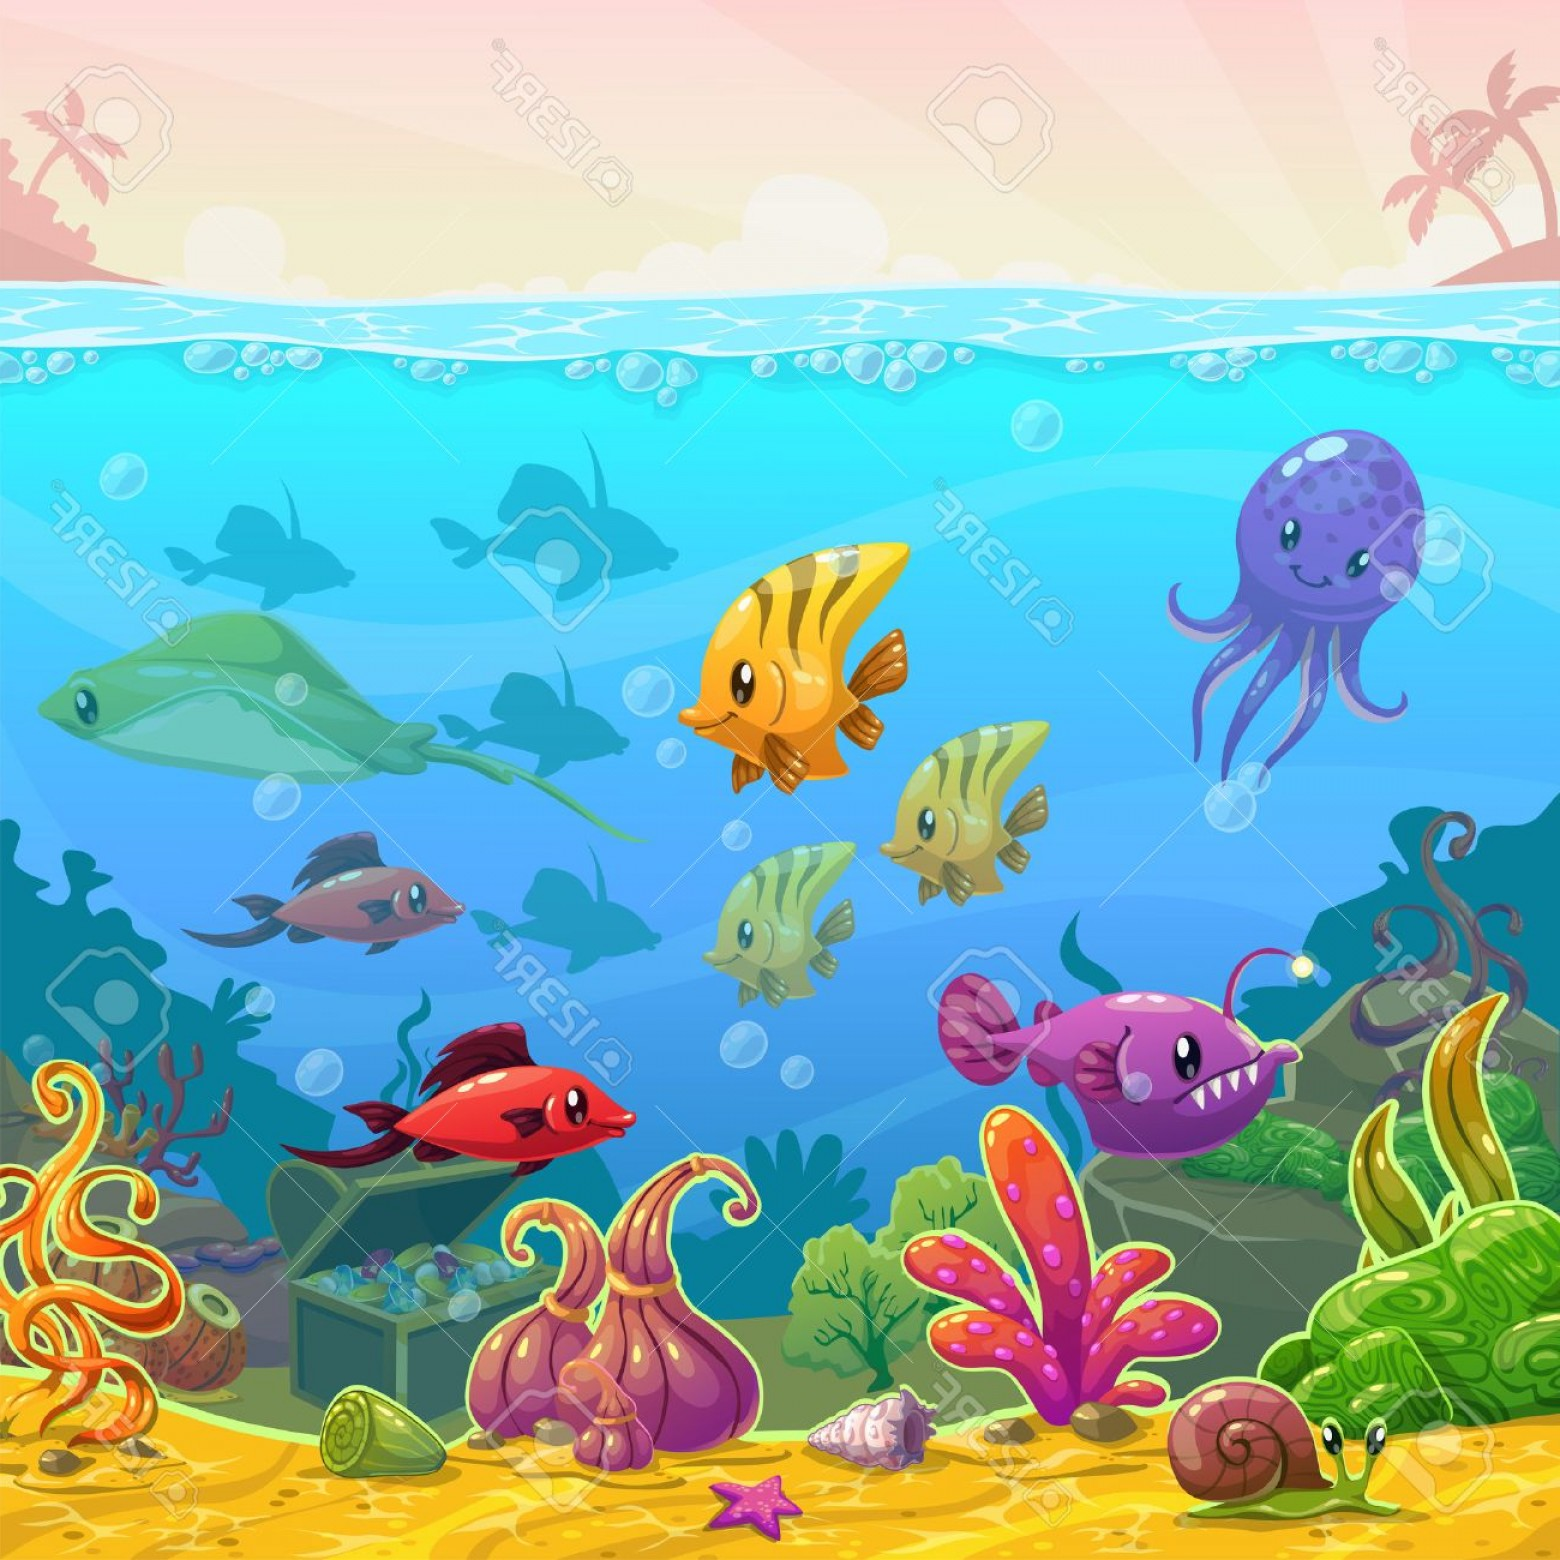 Underwater Sea Vector Art: Photostock Vector Funny Cartoon Vector Underwater Illustration With Sea Animals Square Size